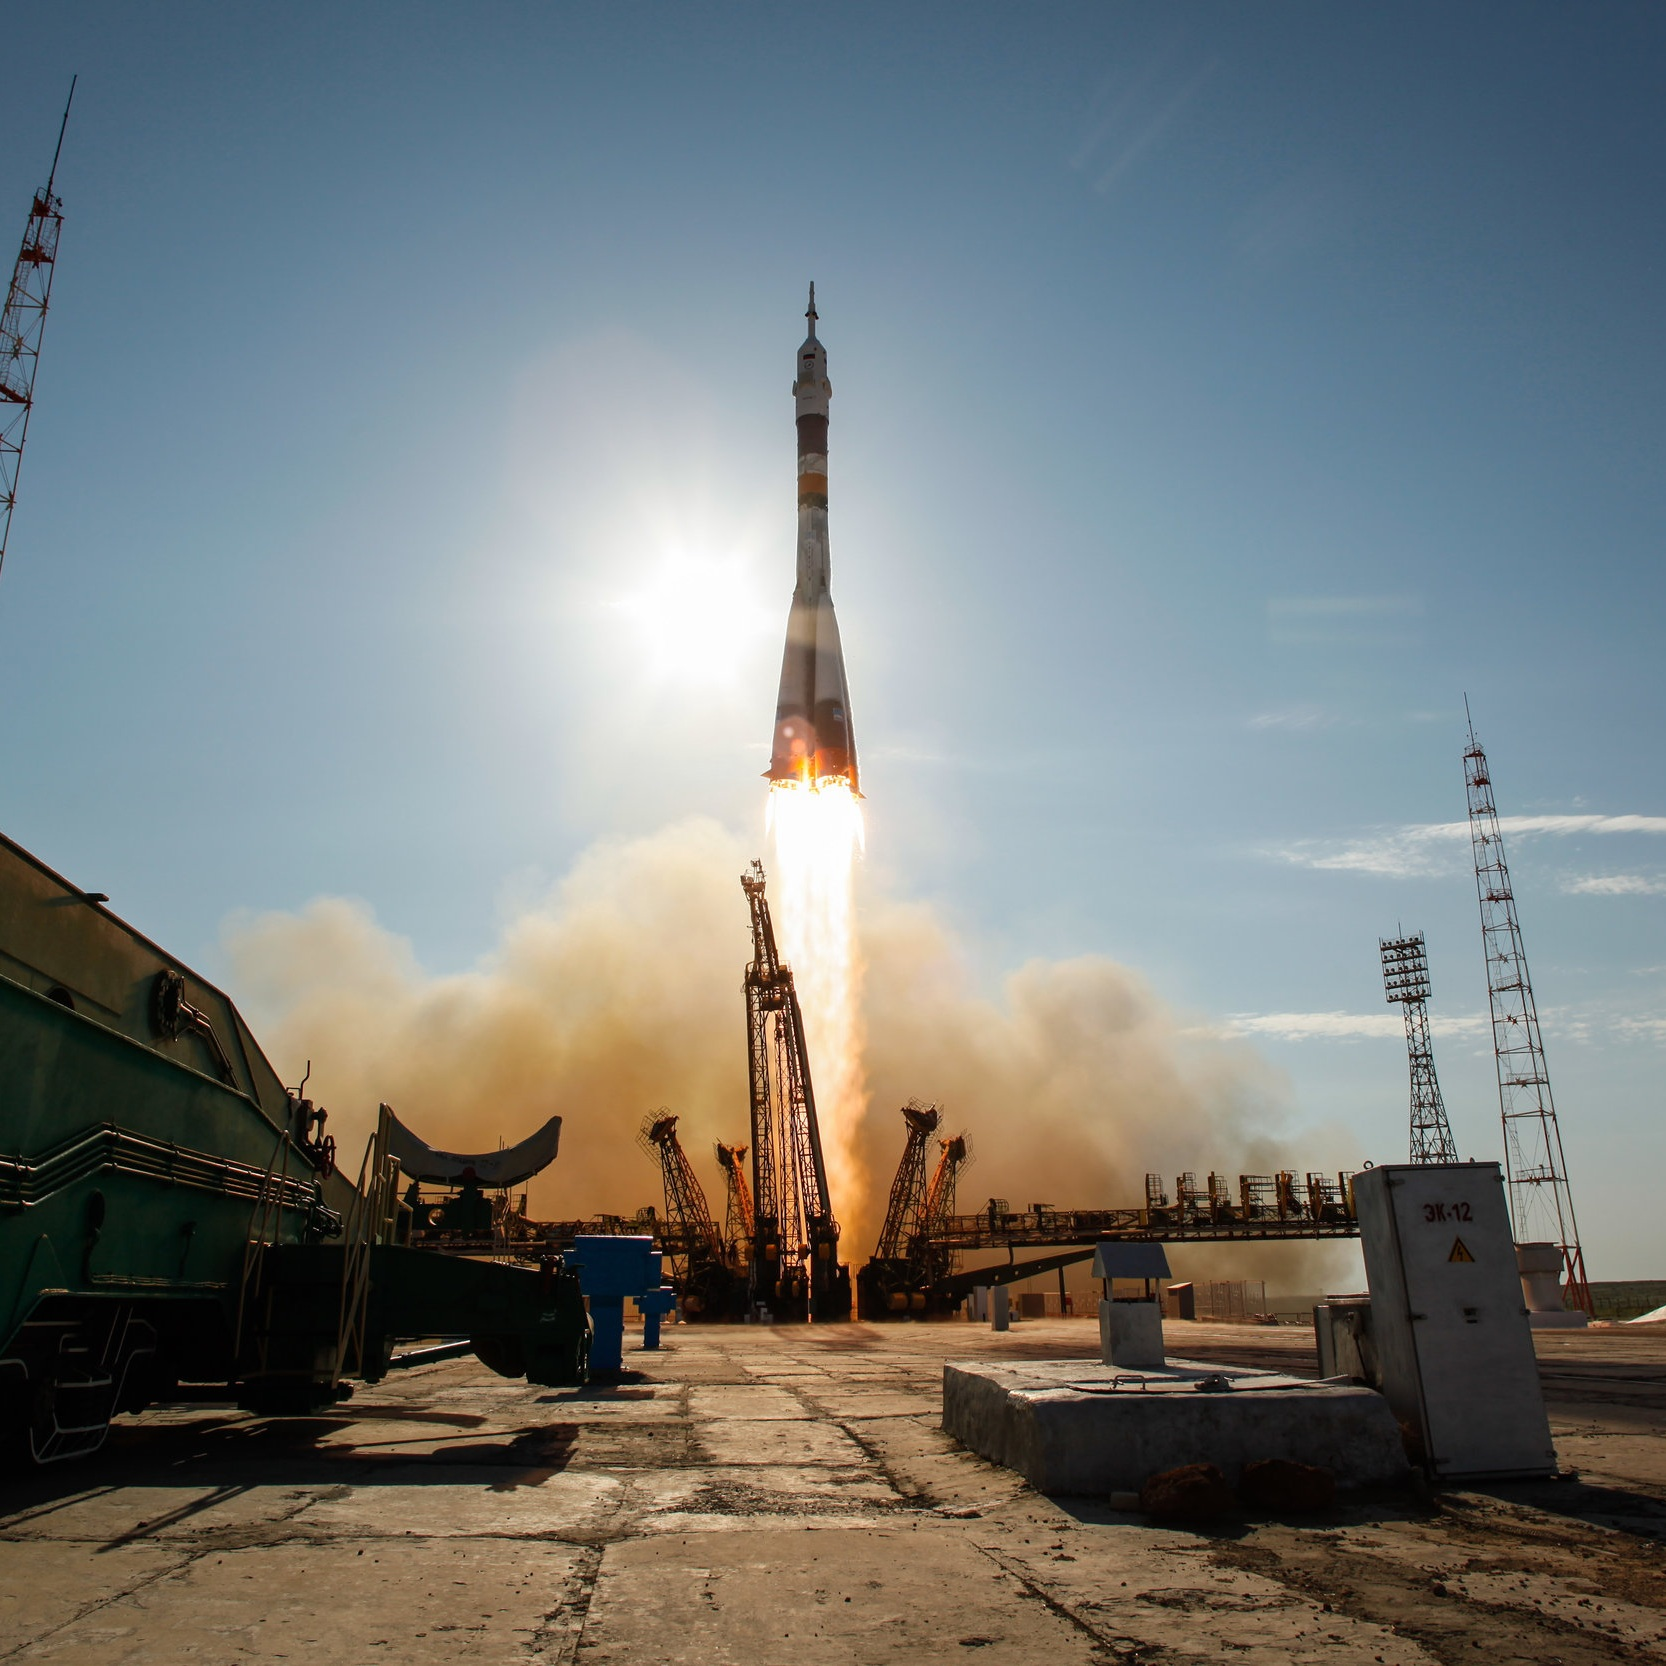 Sunday, May 27 - 8:00pm EDT - Plesetsk Cosmodrome, RussiaA Russian Soyuz rocket will launch a Glonass M navigation satellite for the Russian Aerospace Forces.